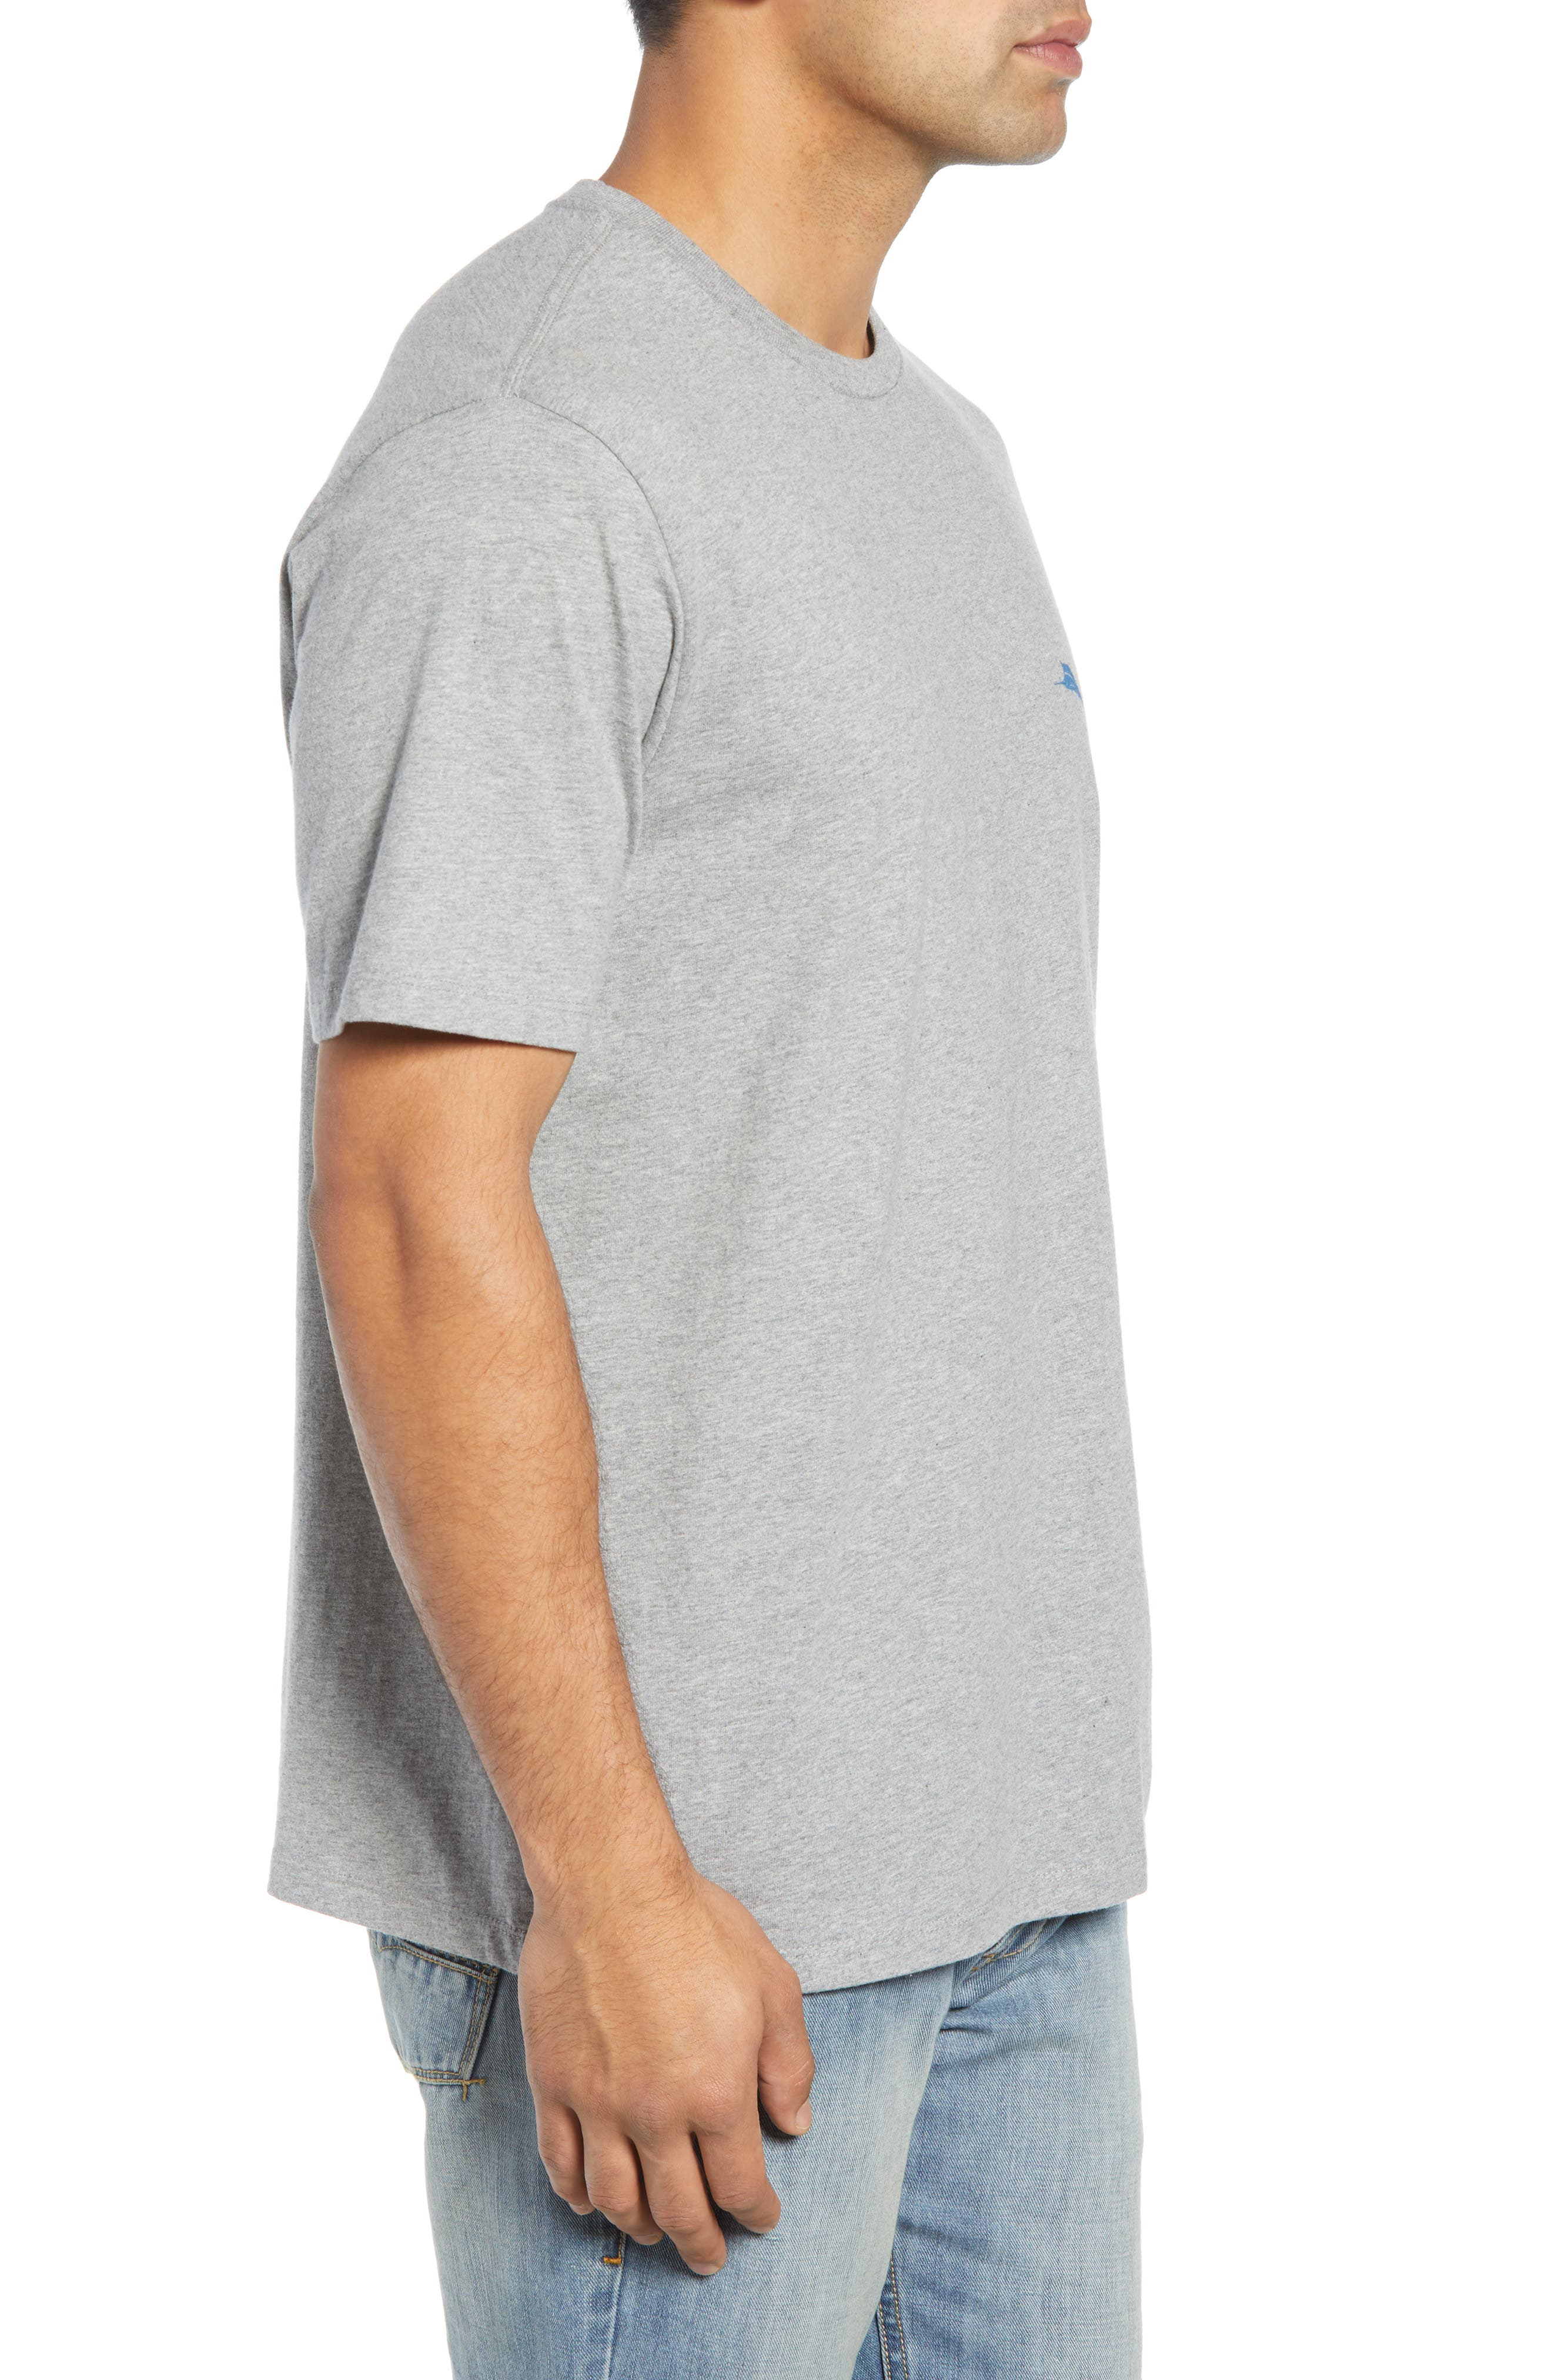 The Struggle is Reel T-Shirt,                             Alternate thumbnail 3, color,                             GREY HEATHER